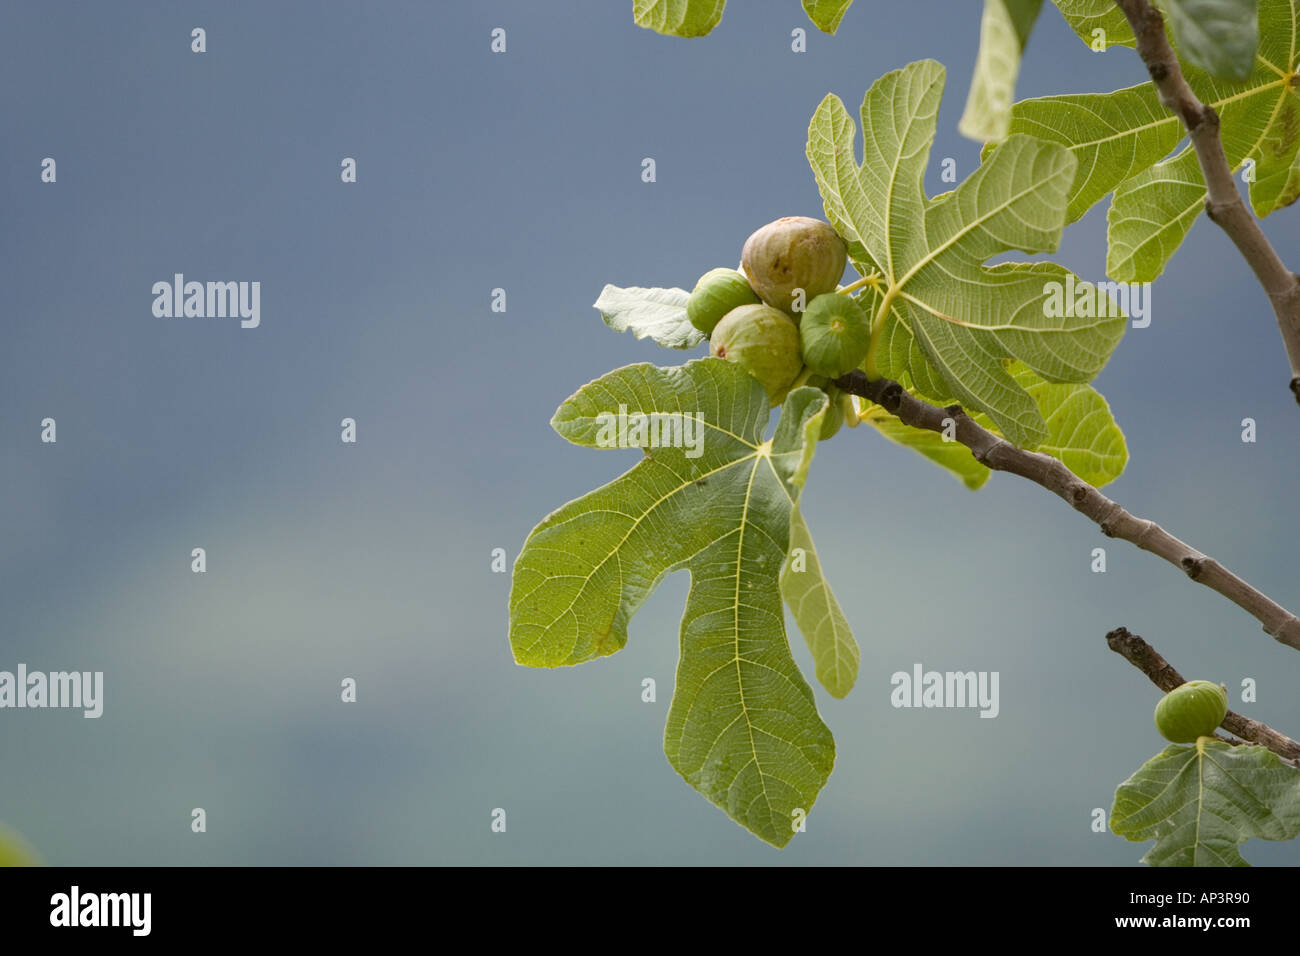 Fig tree branch with fruit - Stock Image